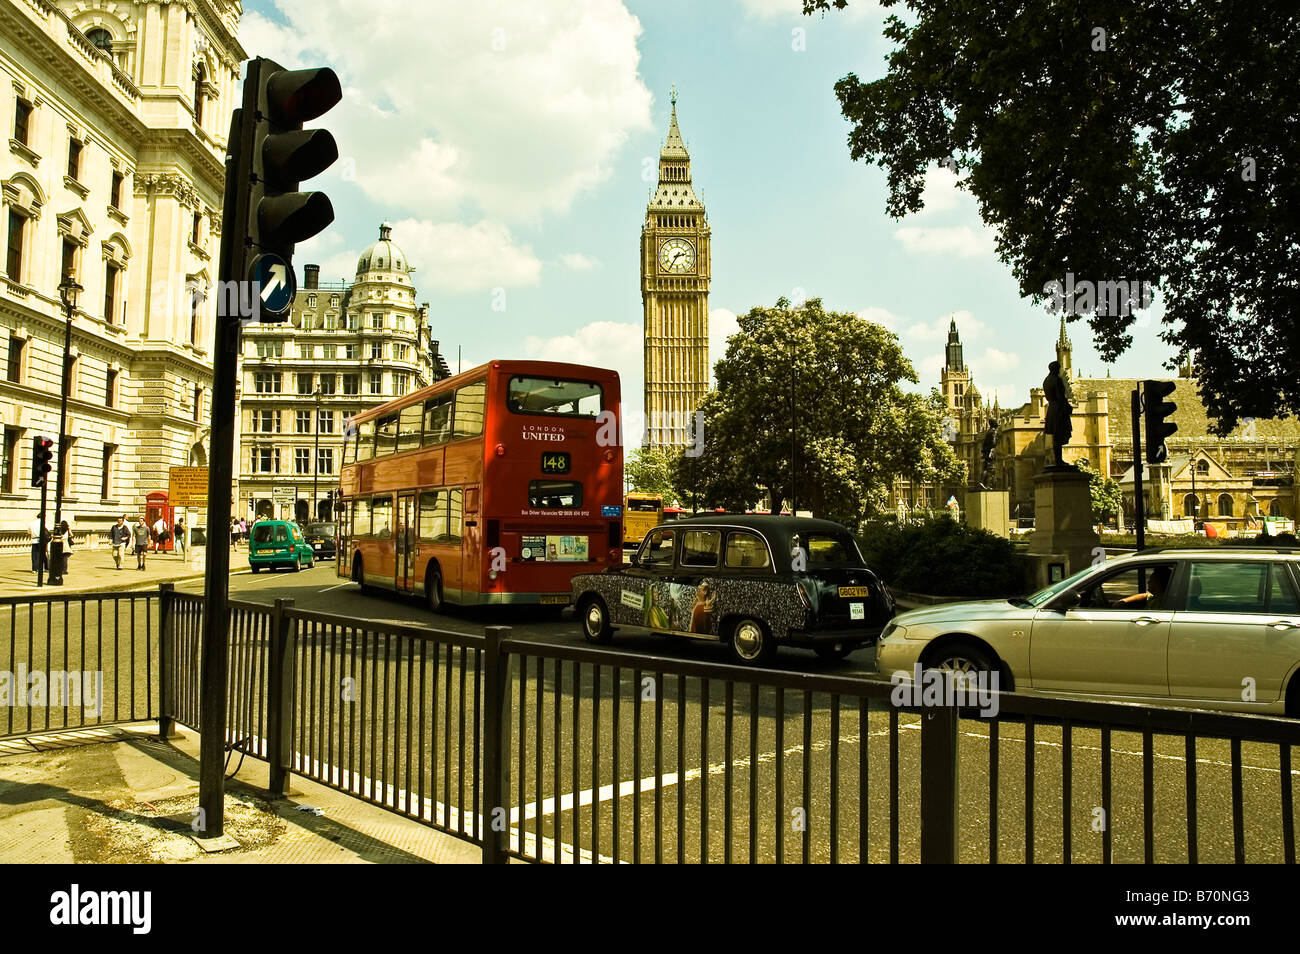 A view of the street with black taxis, red double decker buses and Big Ben in the background London UK - Stock Image